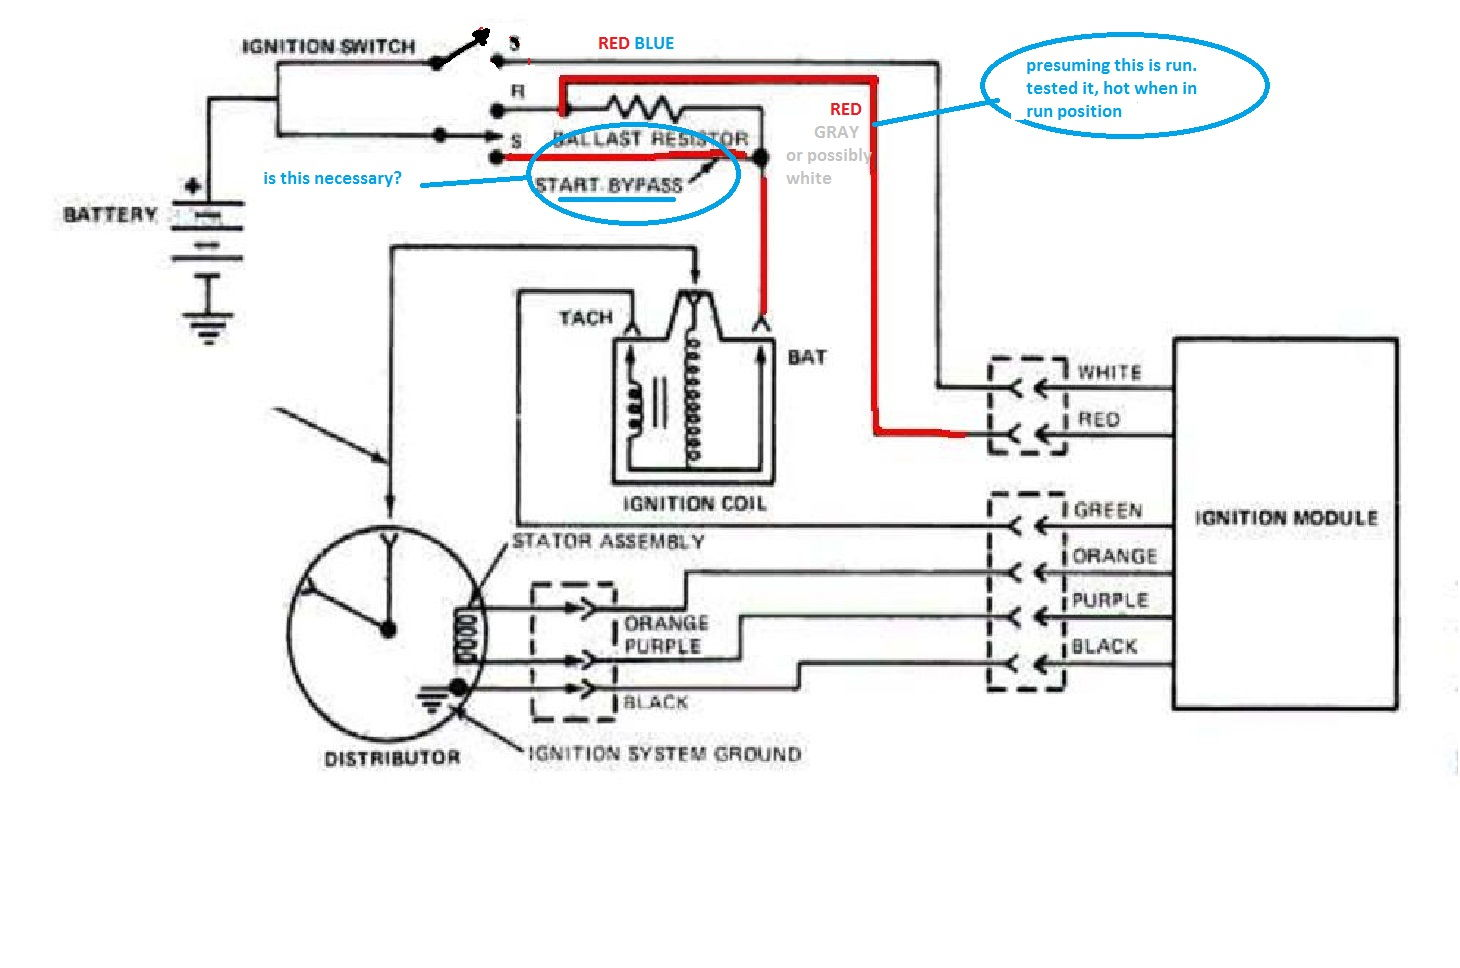 Mopar Ignition Coil Ballast Resistor Wiring Diagram from cimg4.ibsrv.net